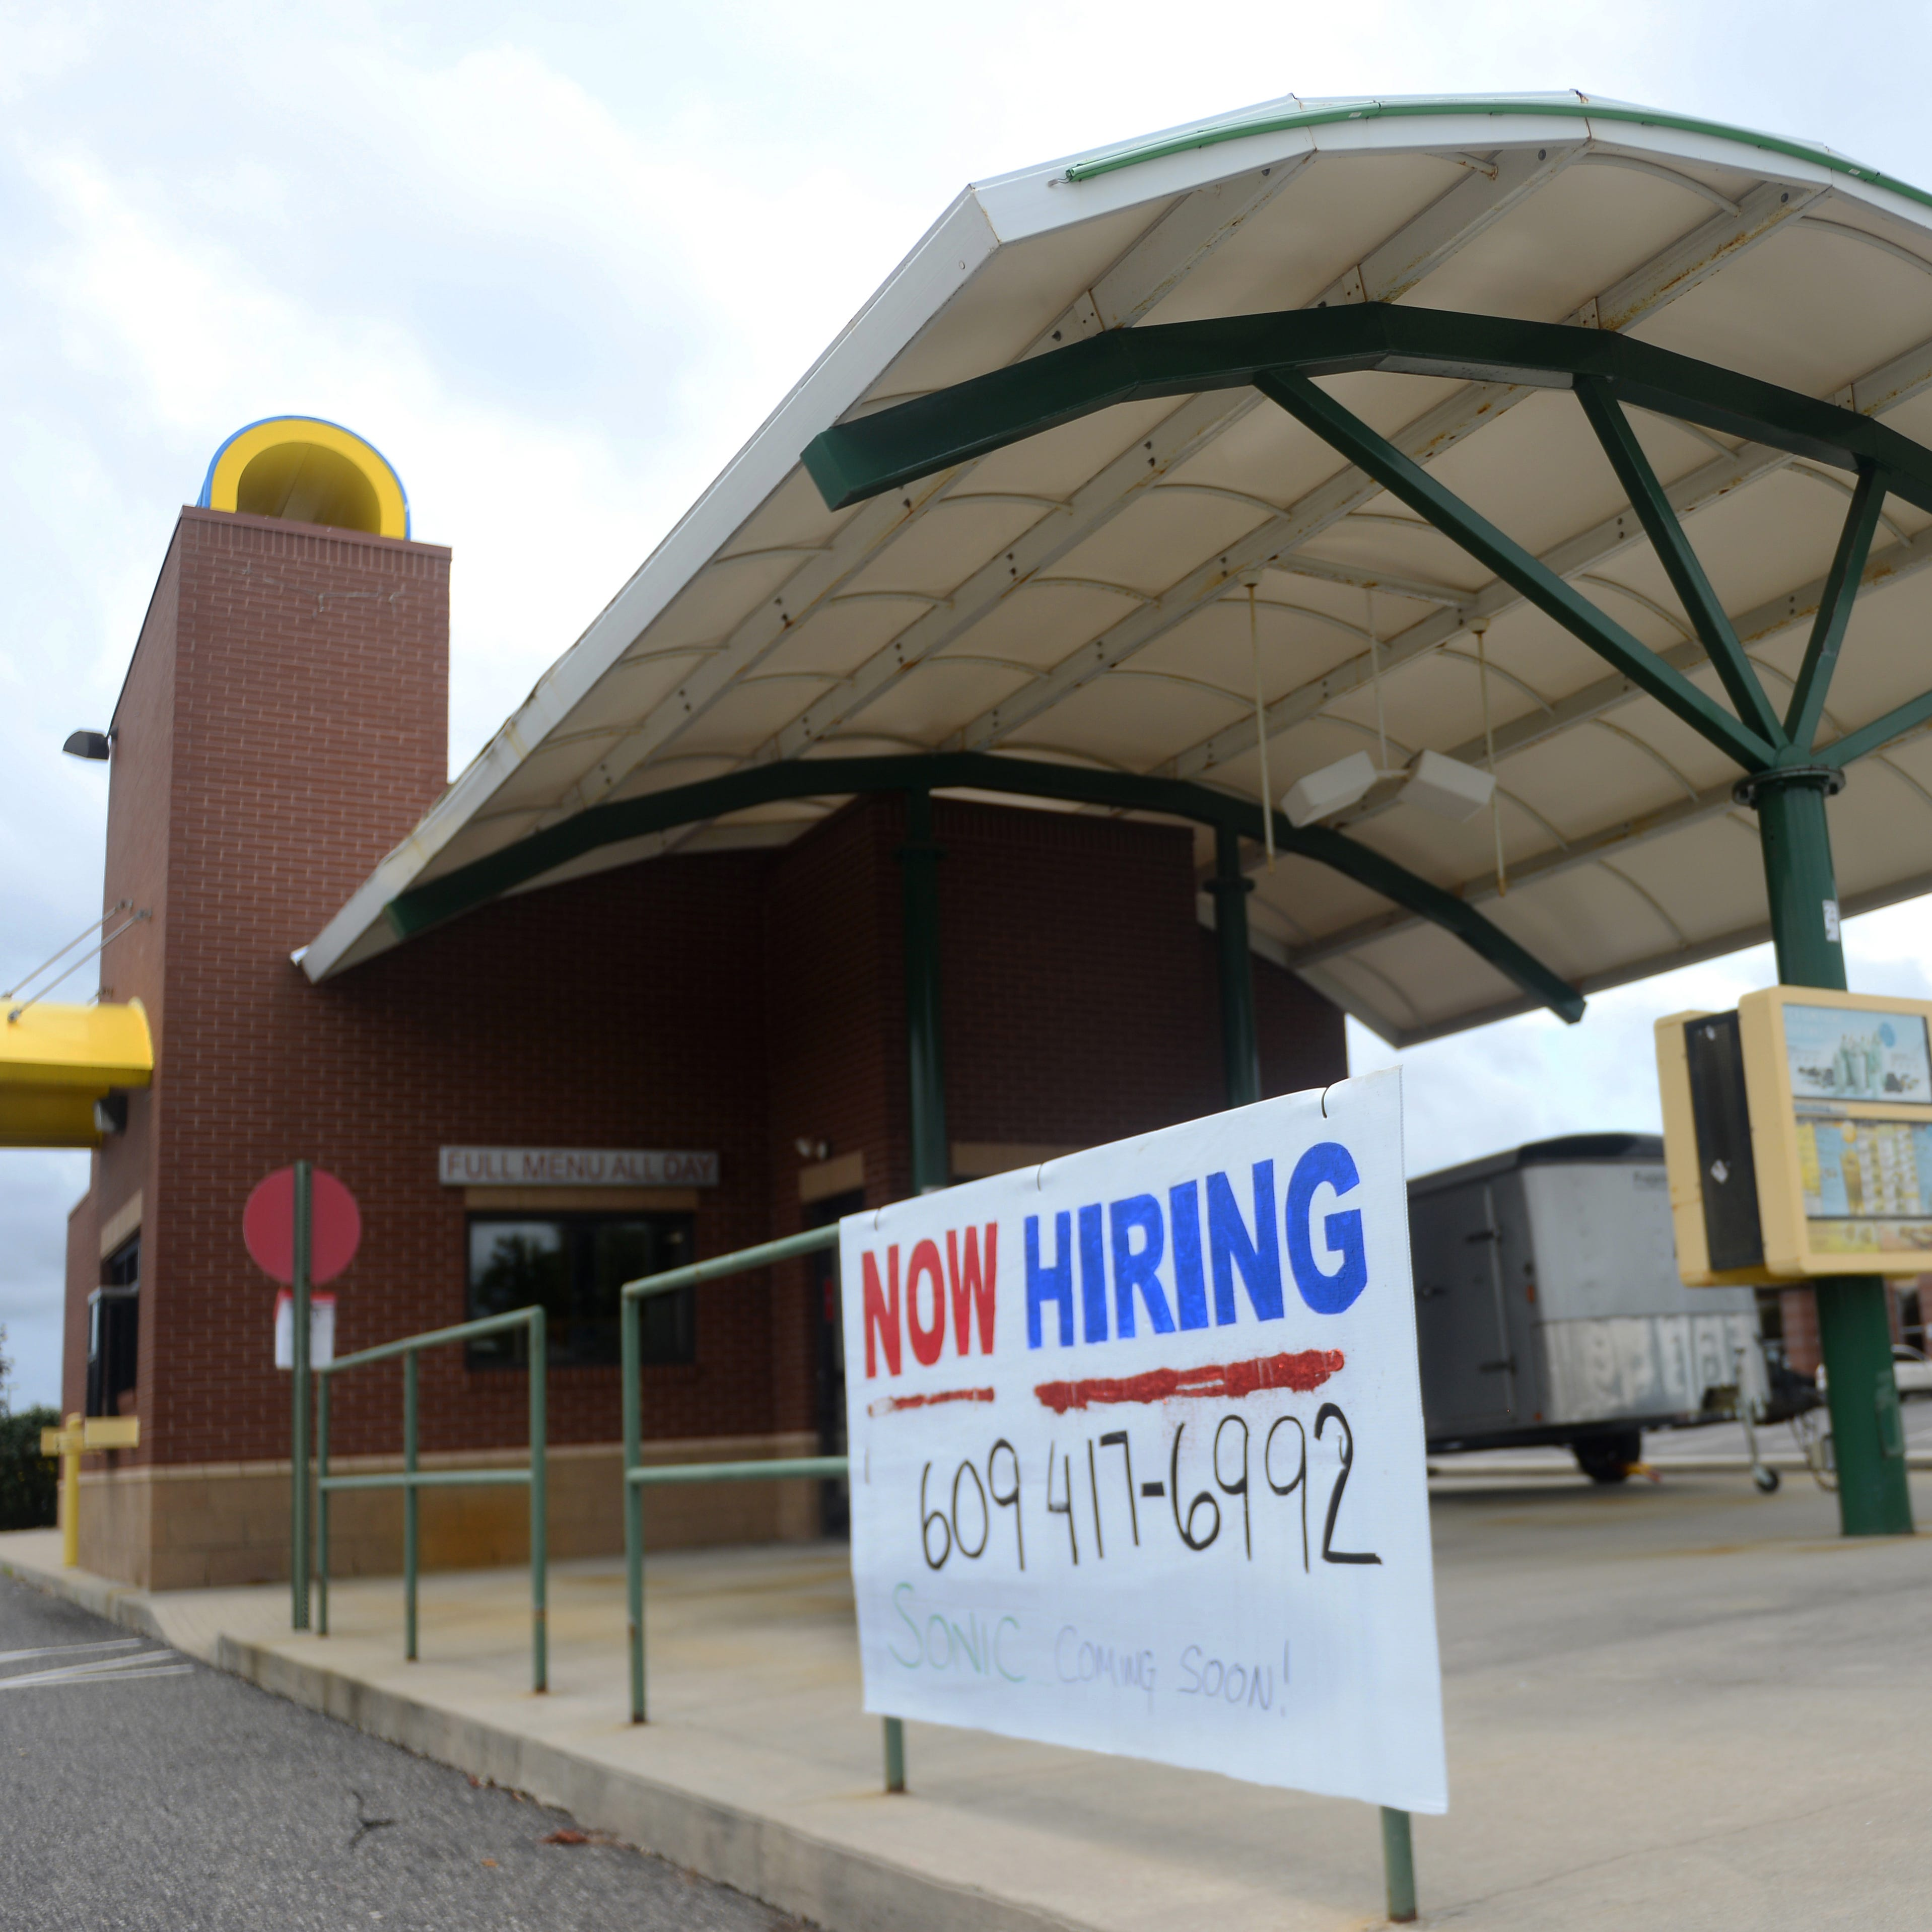 A closed Sonic Drive-In fast-food restaurant on Delsea Drive in Millville pictured here on Monday, August 13.